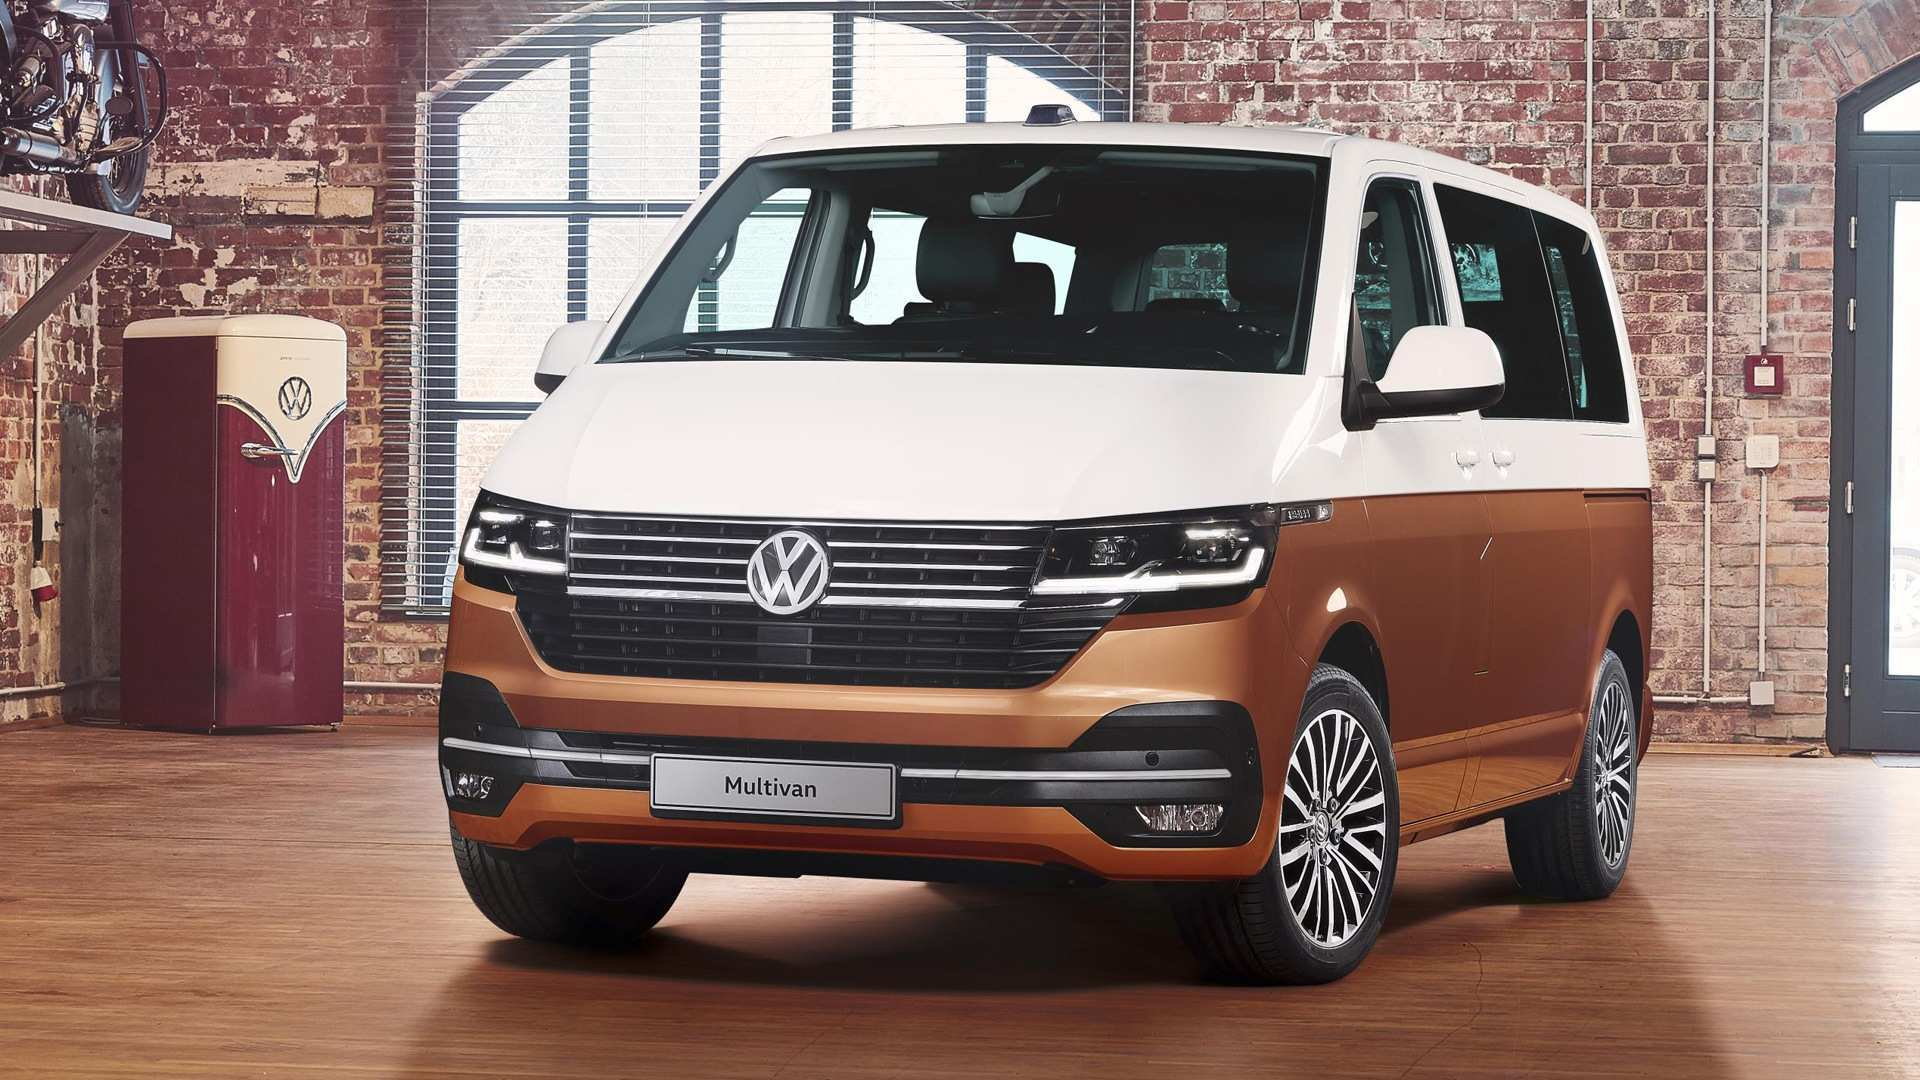 30 All New 2020 Volkswagen Bus Price Design And Review